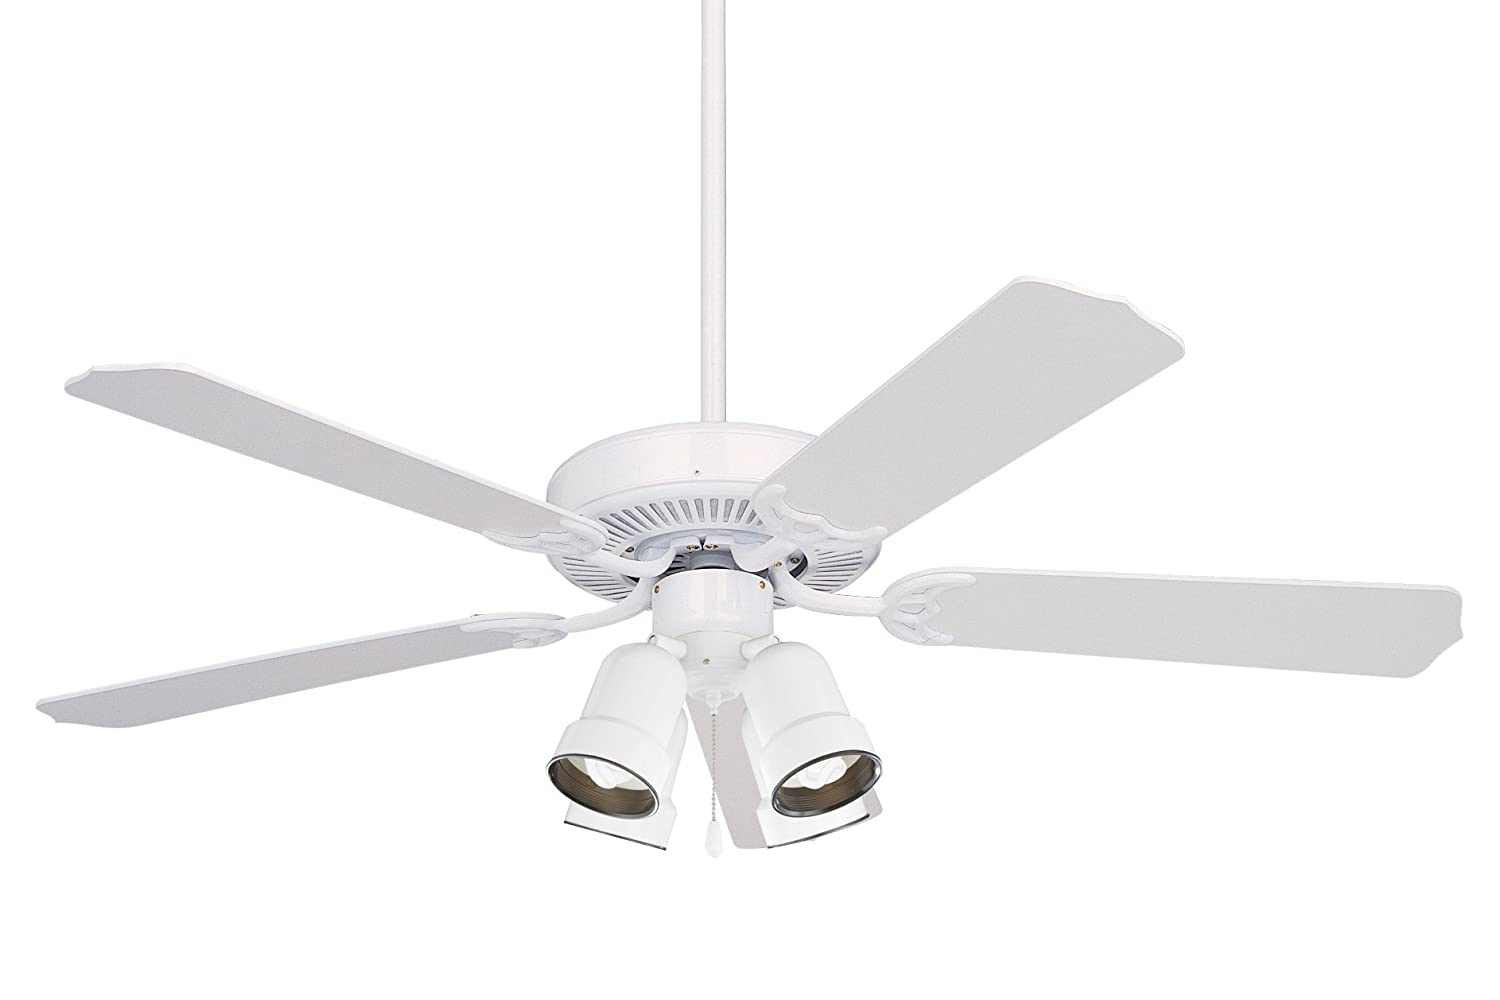 ceiling fans with fan uplights patrofi uplight veloclub hero co emerson